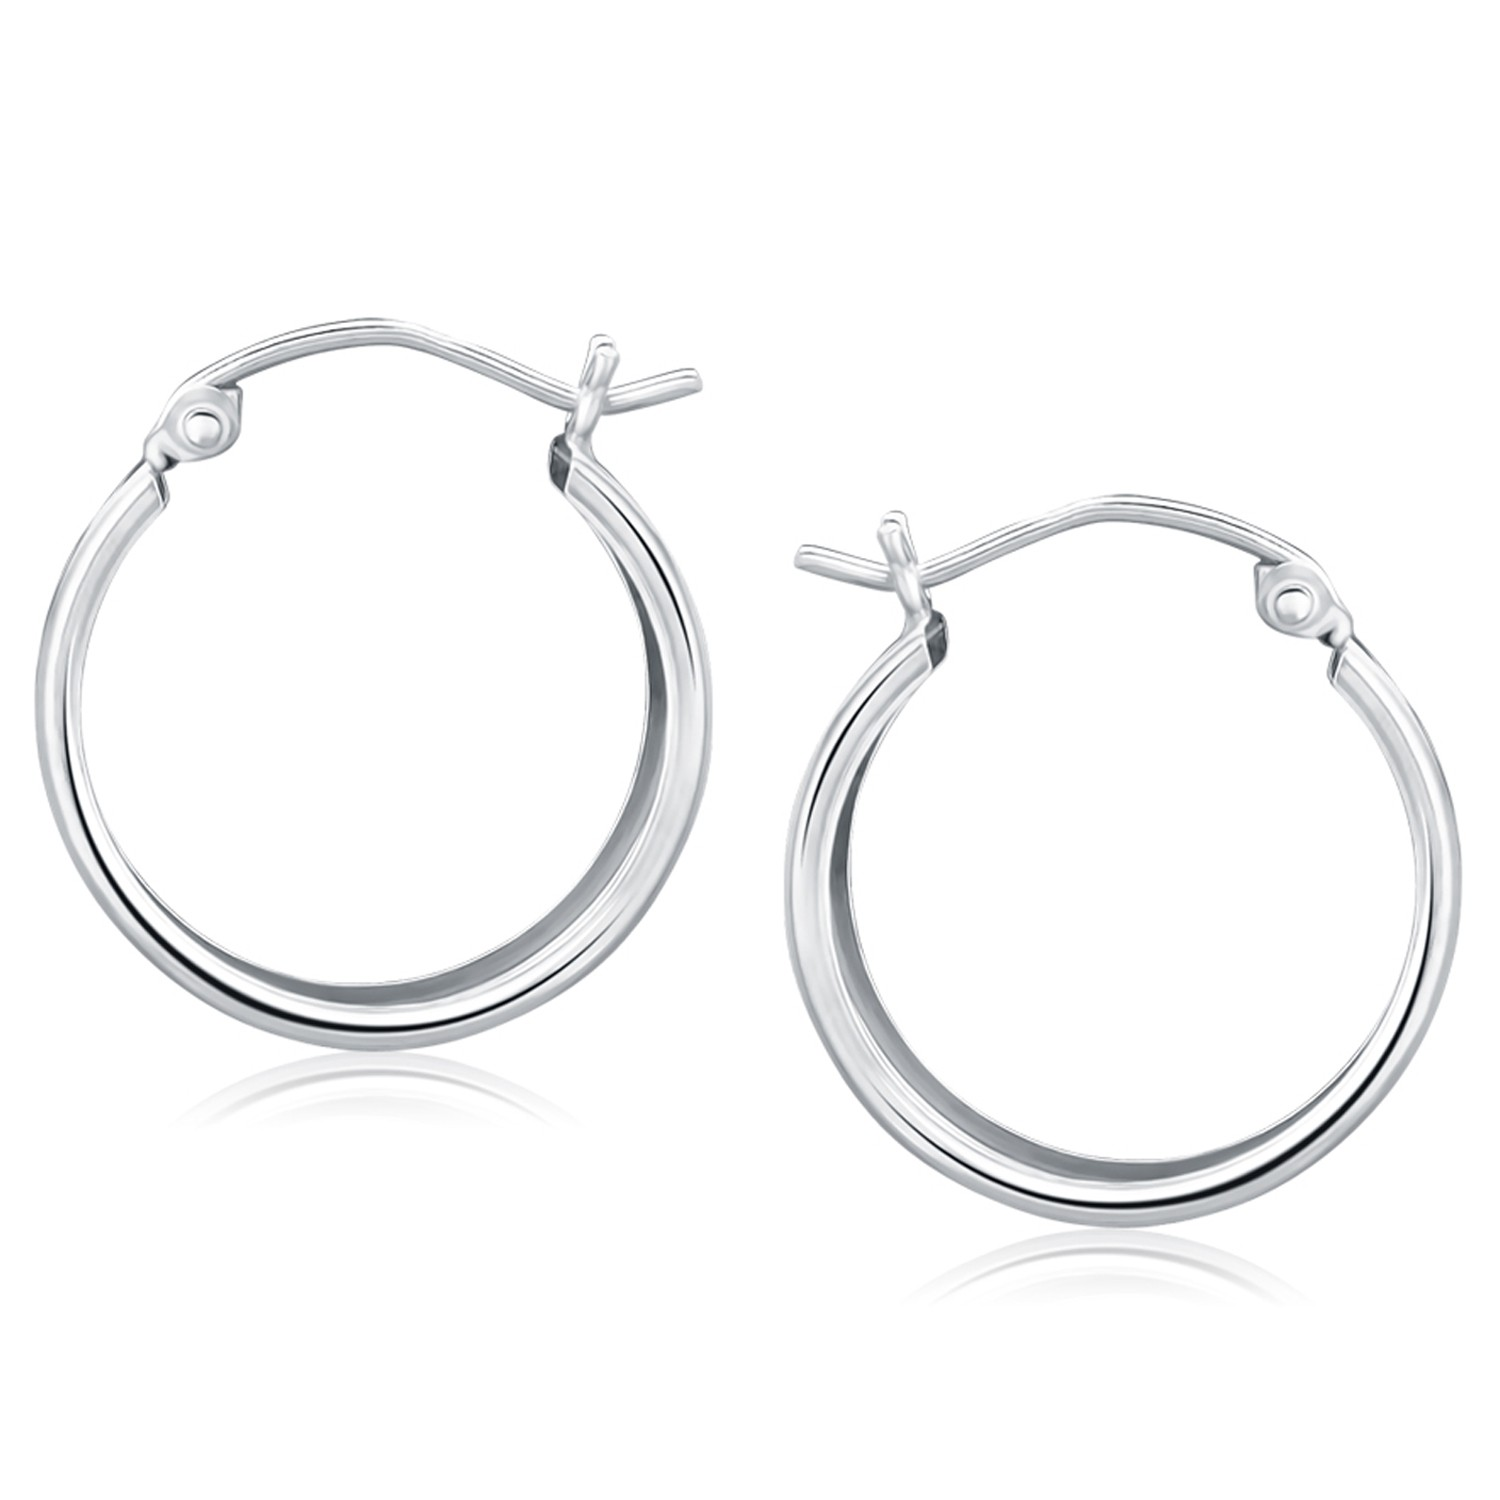 extra large hoop earrings with flat sides in 14k white. Black Bedroom Furniture Sets. Home Design Ideas